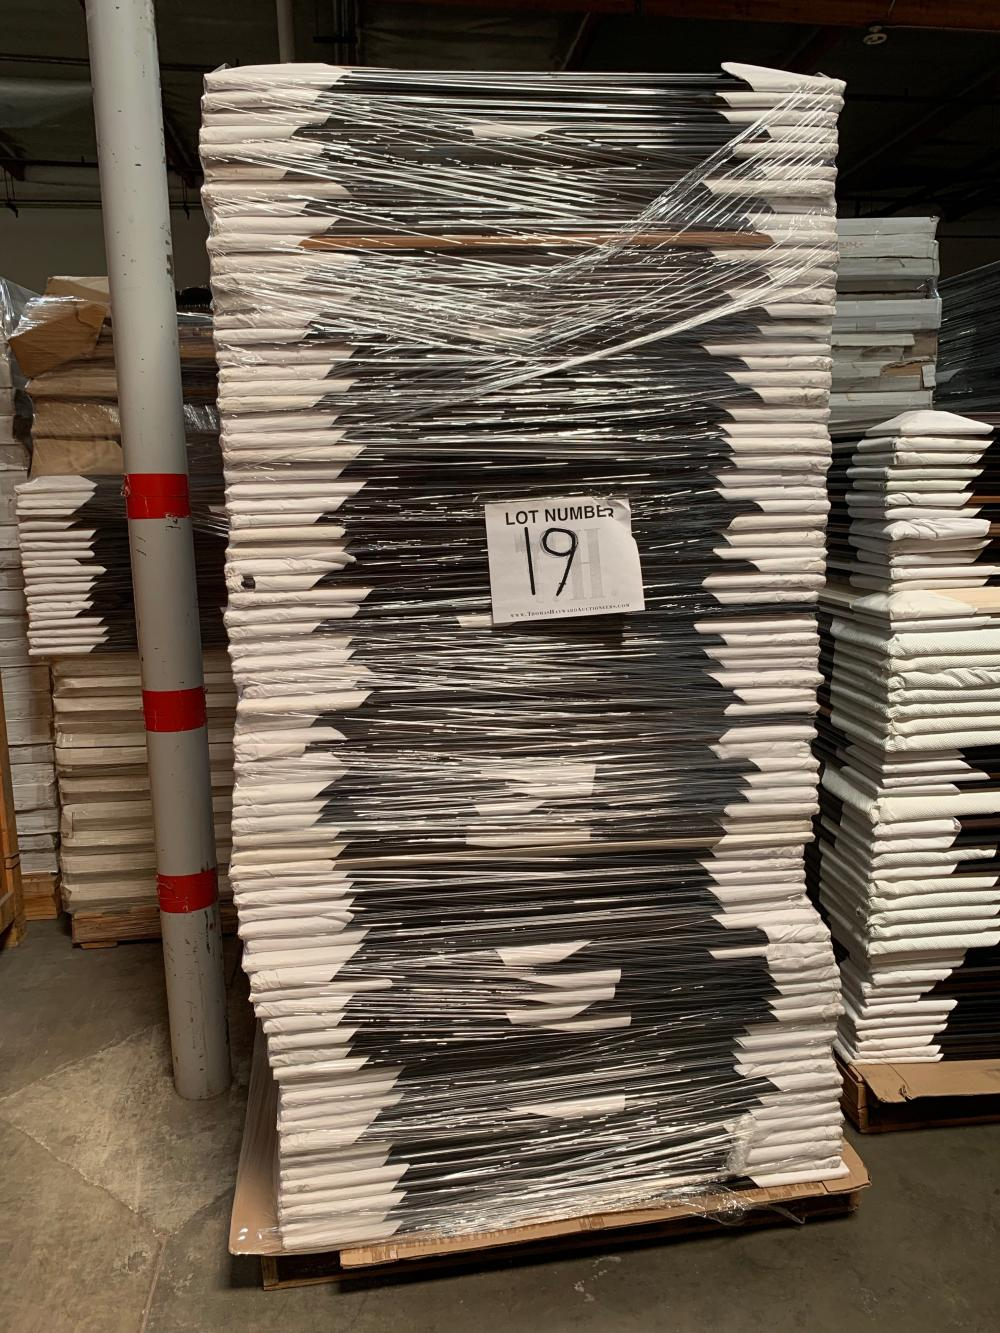 Pallet of Picture Frames 19